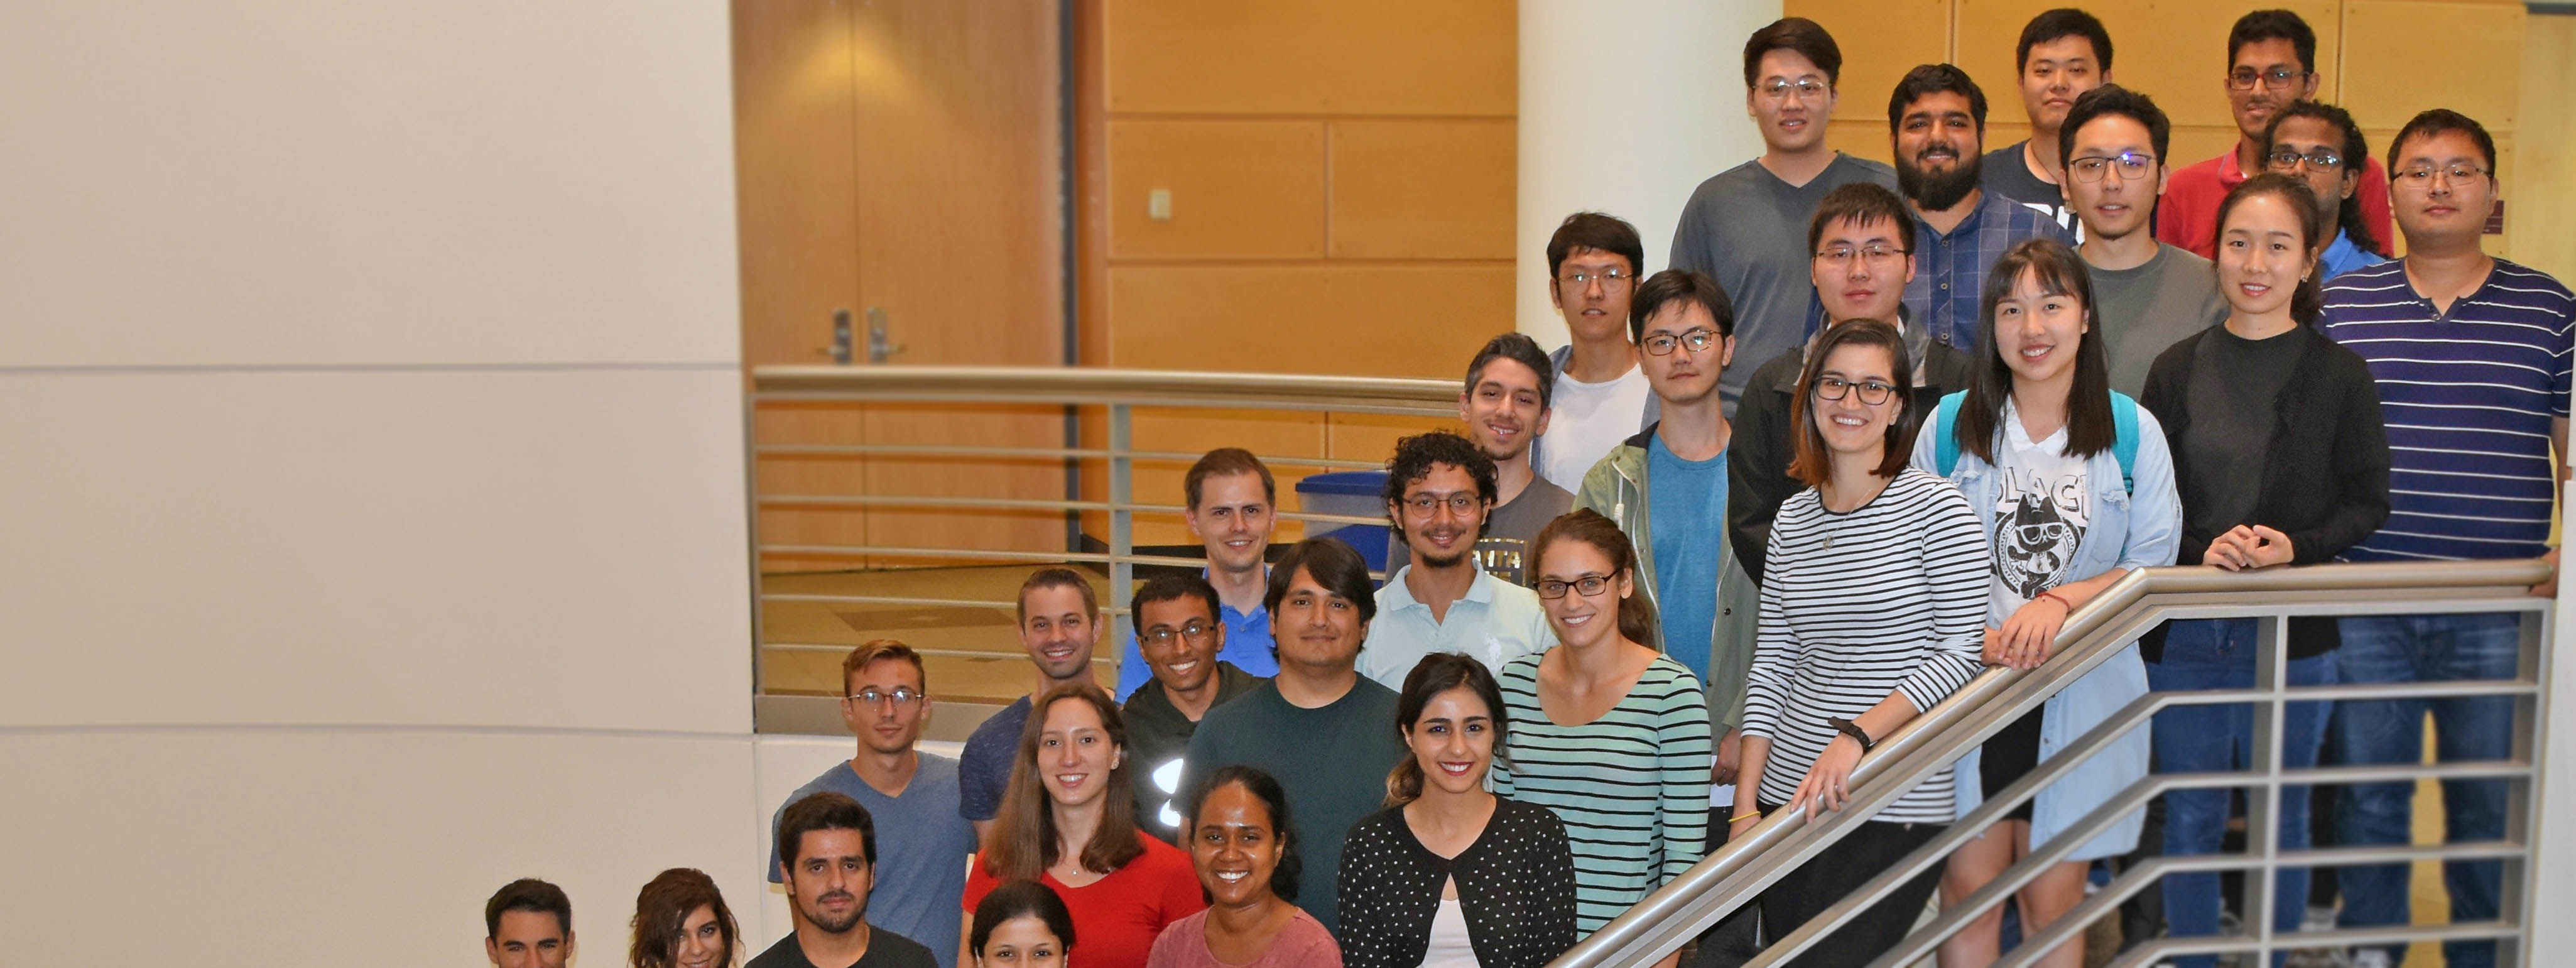 ECE PhD Students, Incoming 2017 Class